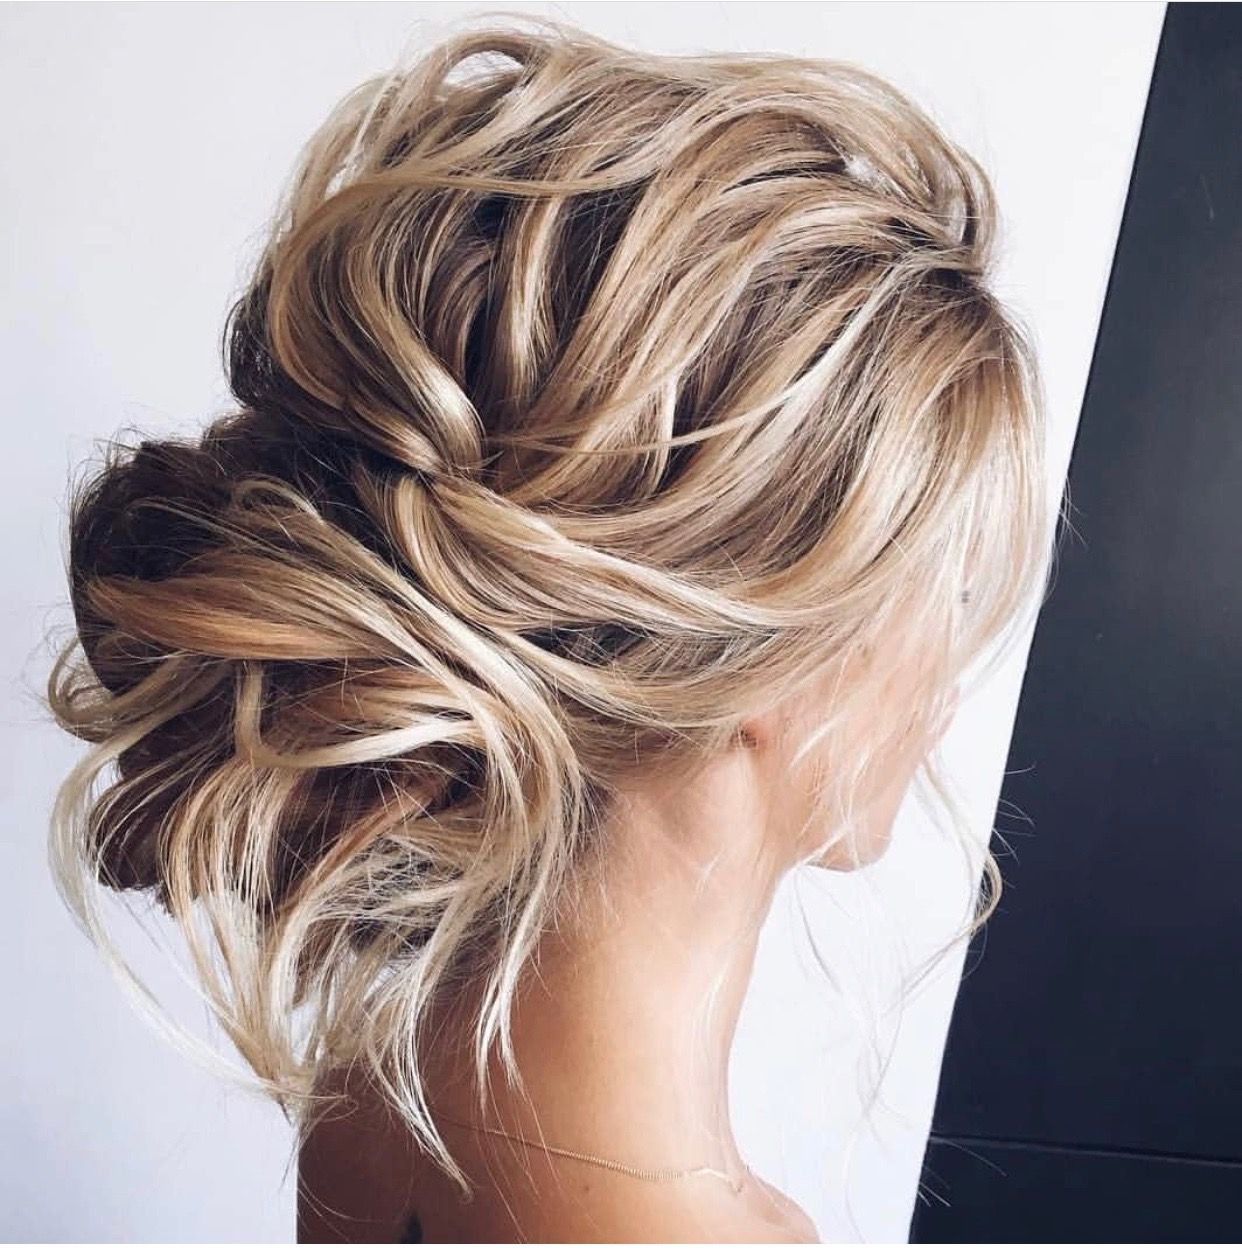 pin by nicci loiacono on up hair in 2019 | bridal hair